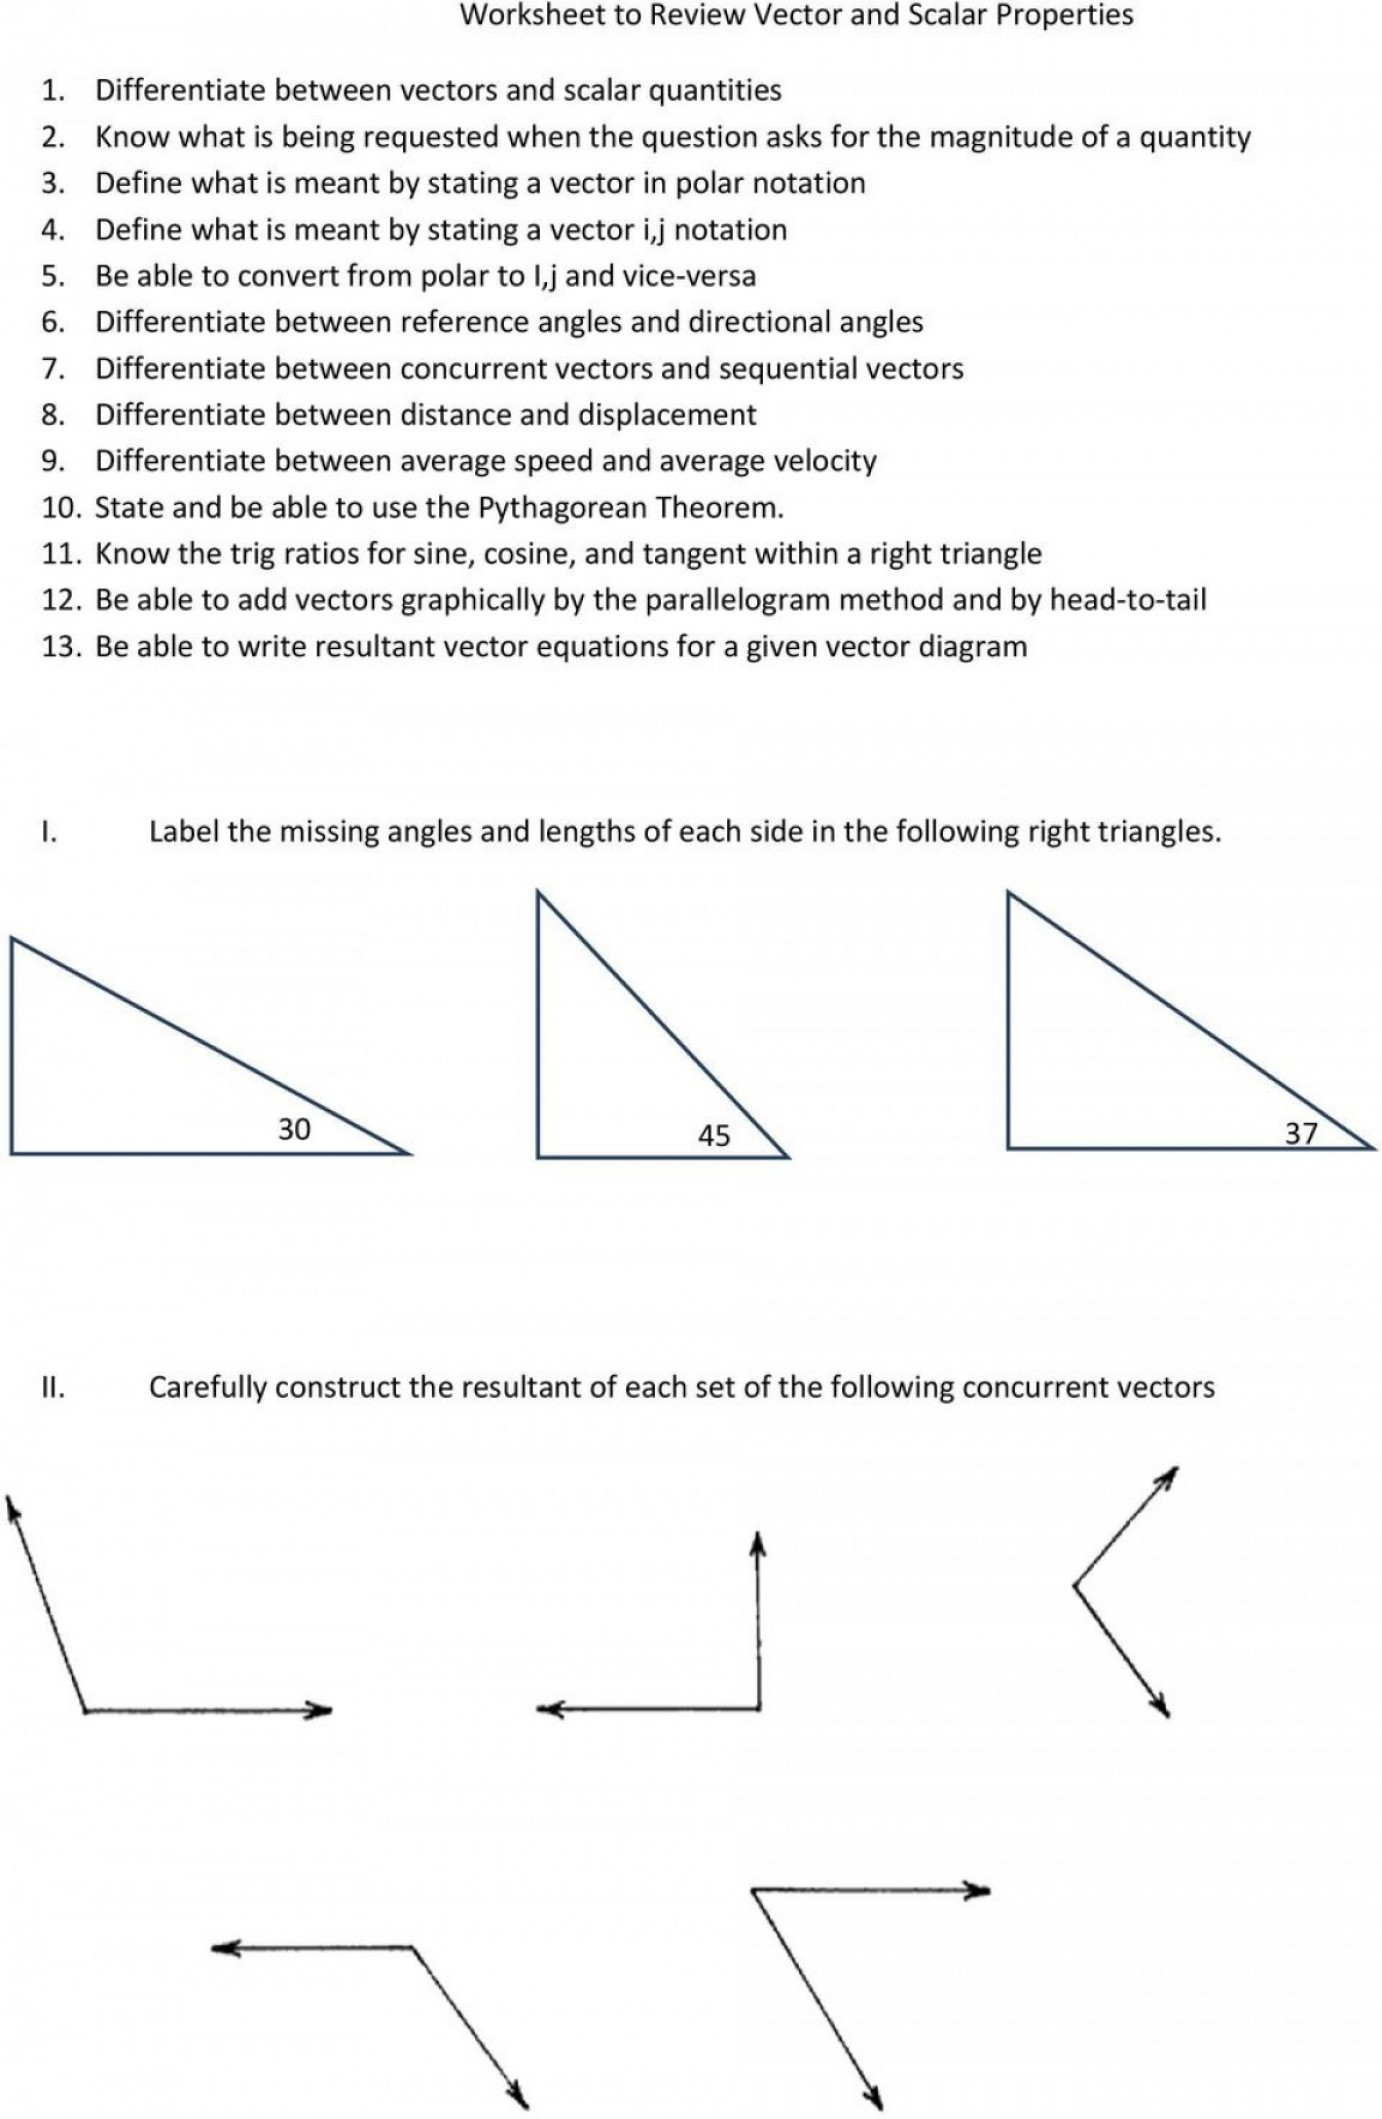 Vector Angle Properties: Worksheet To Review Vector And Scalar Properties